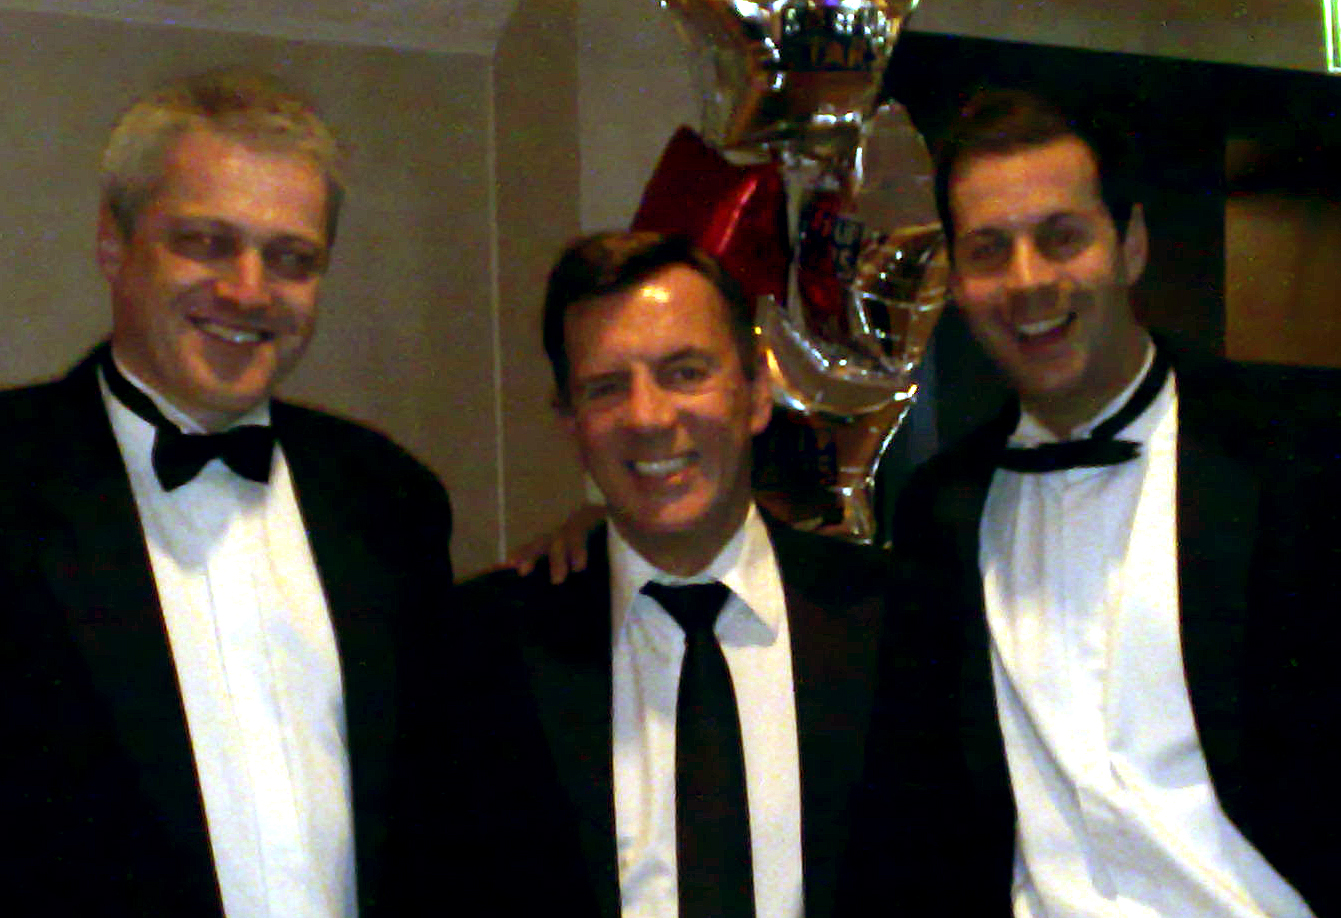 Richard Jobling with Duncan Bannatyne and Ian Lyons